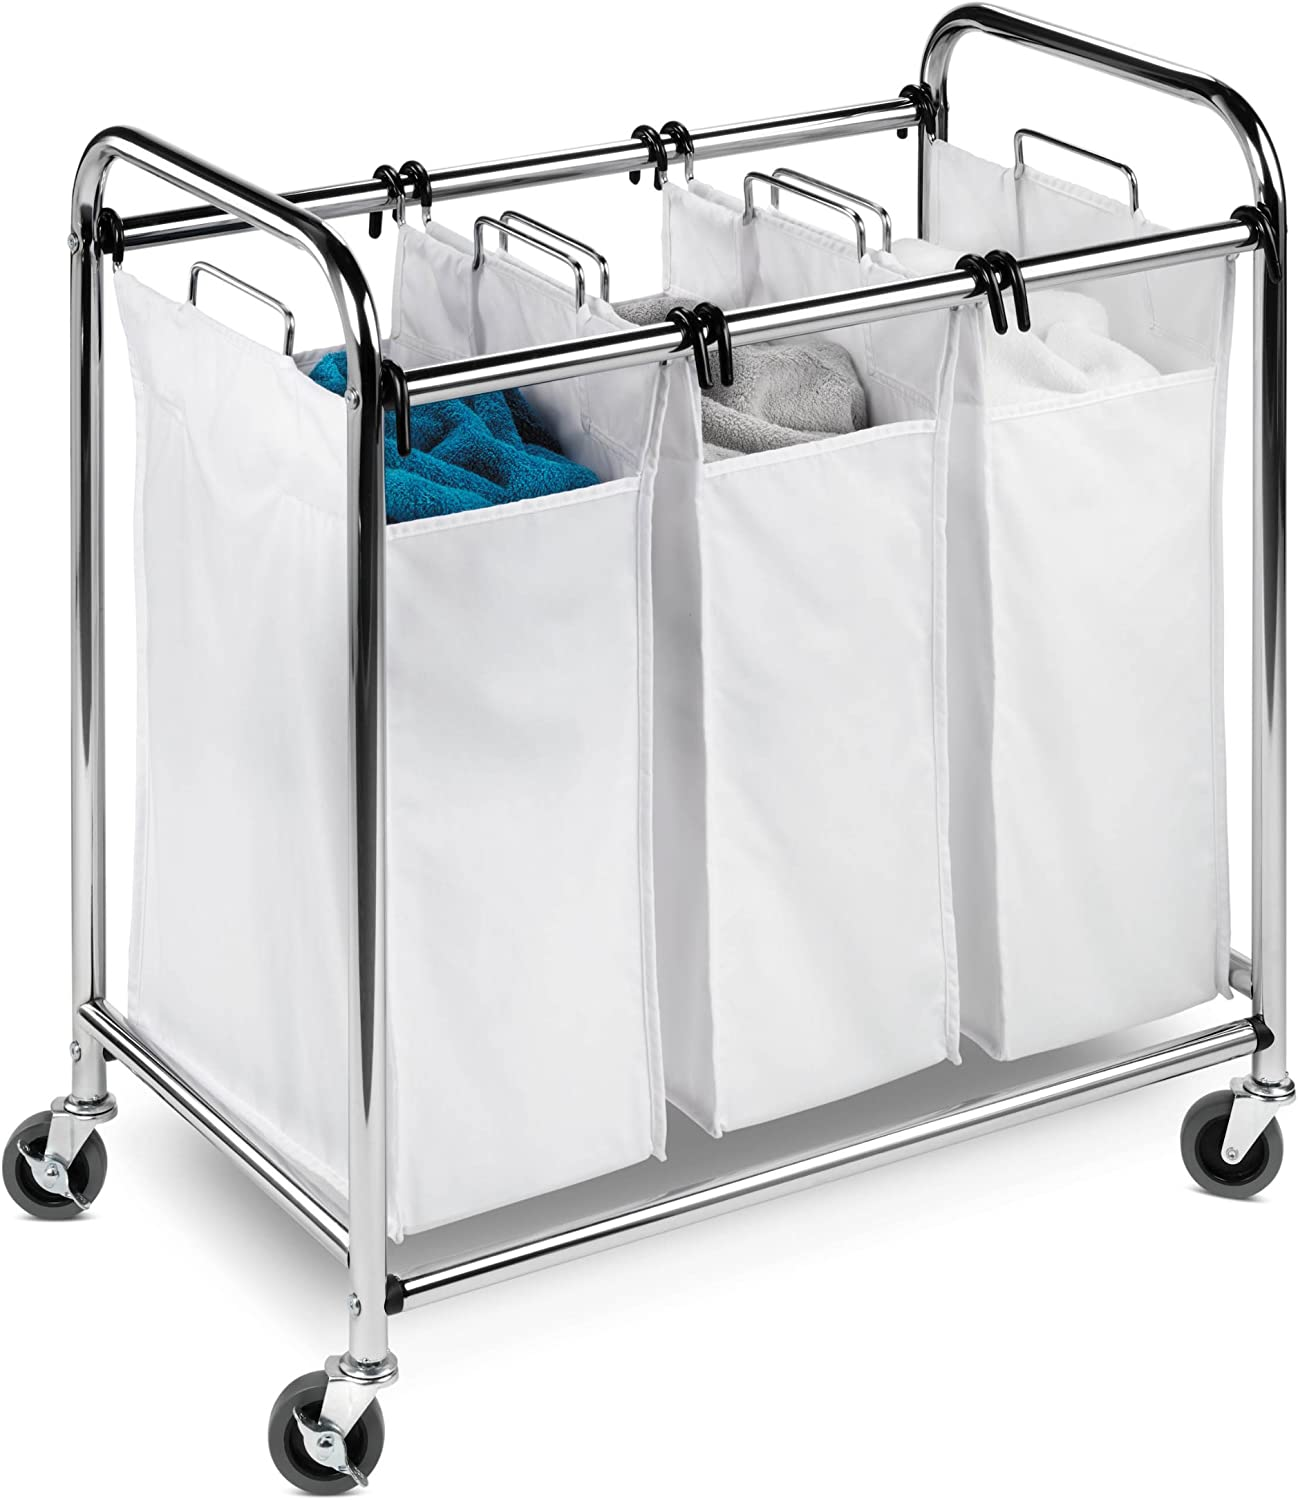 Honey Can Do Commercial-Grade Triple Laundry Sorter Clothes Organizer Storage